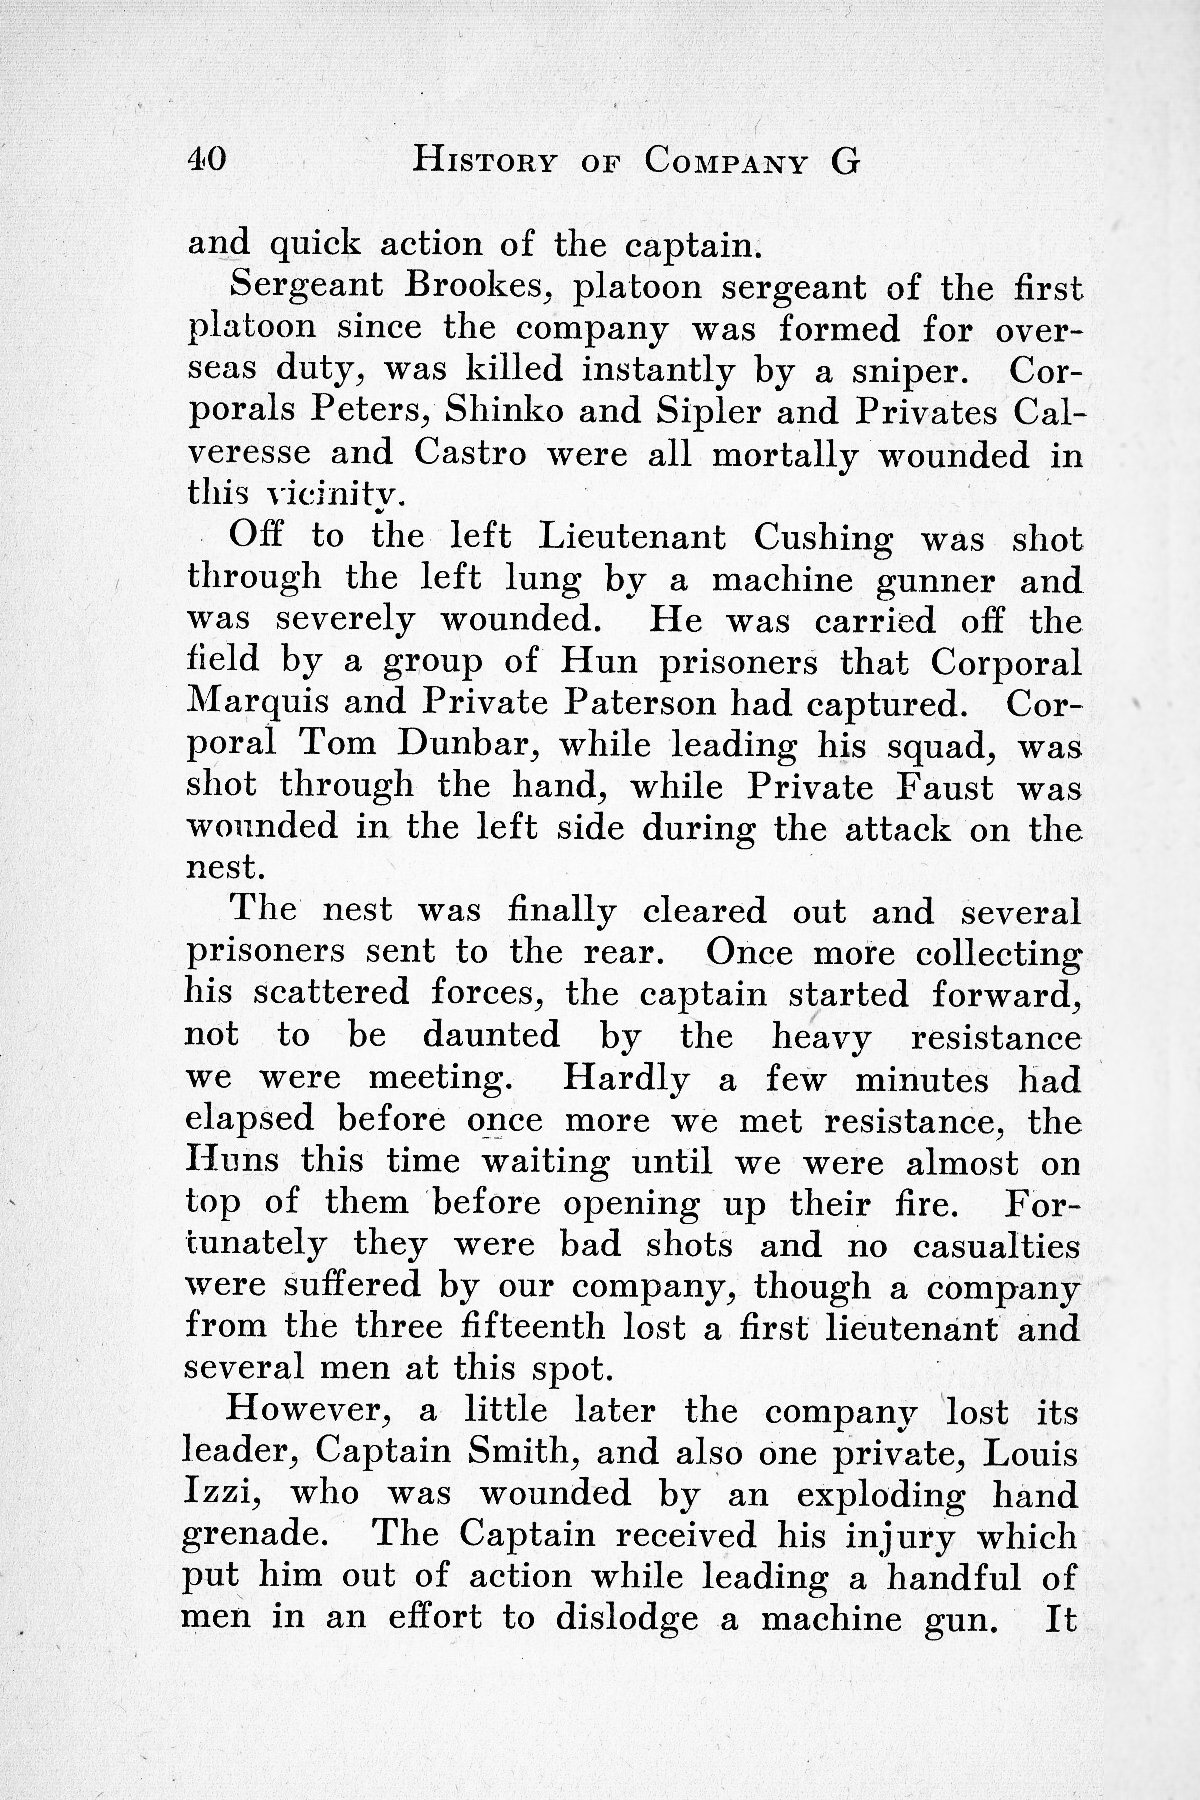 History of Company G 314th Infanty - Page 040